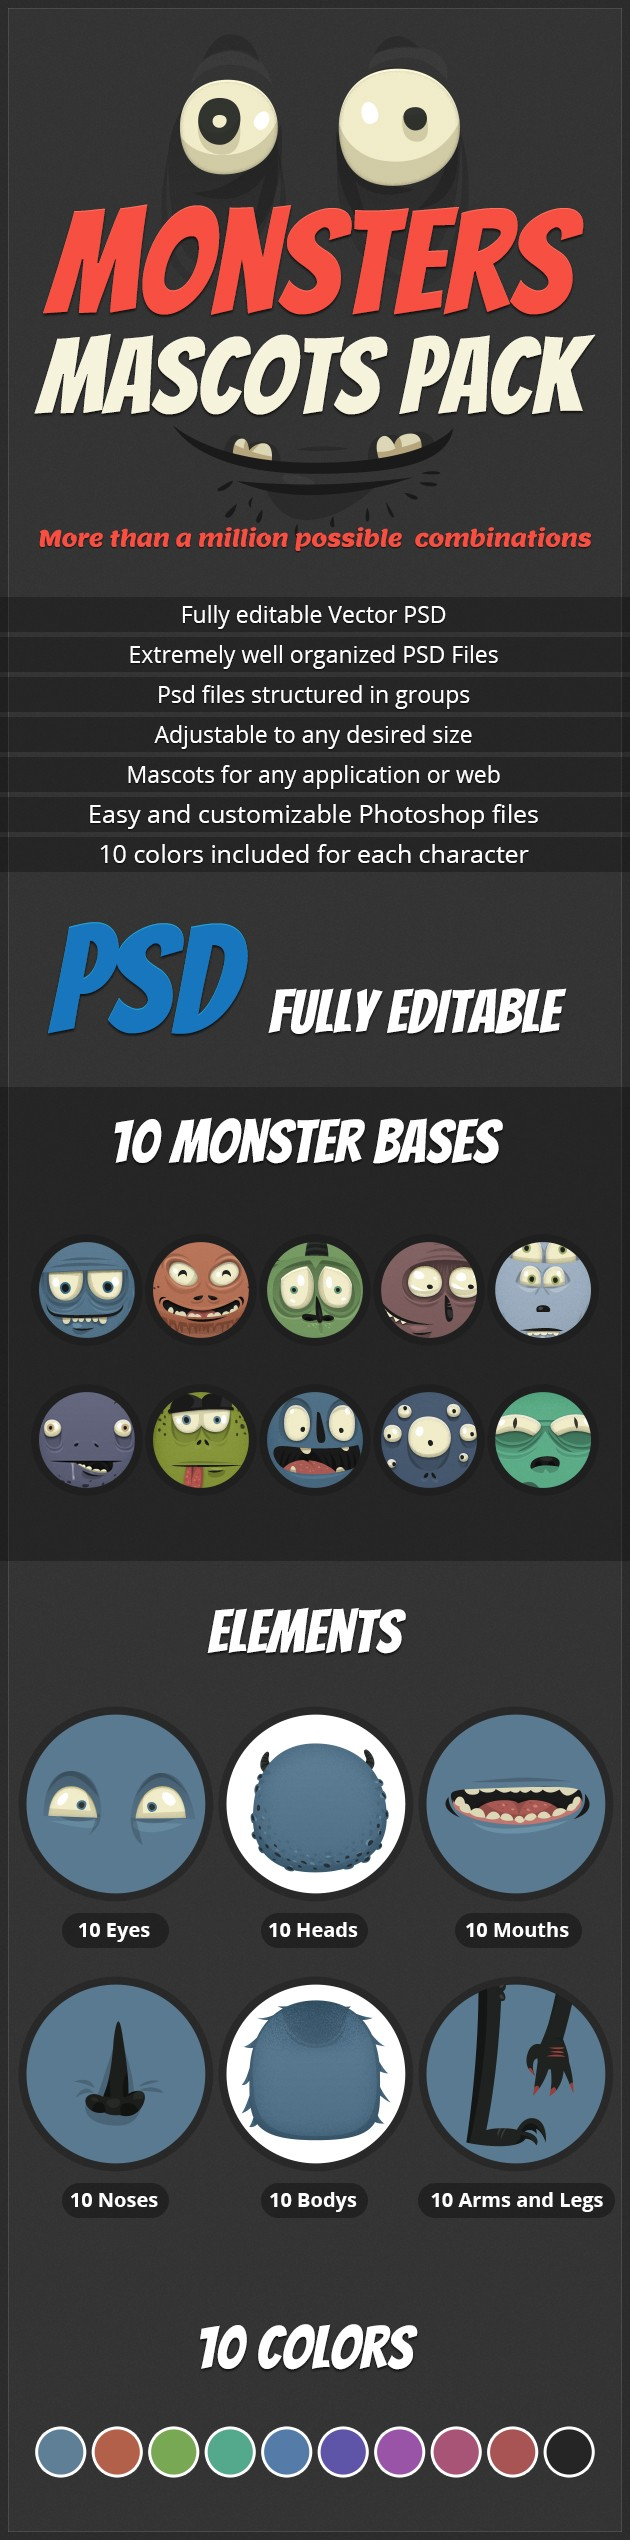 Monster Mascots Pack